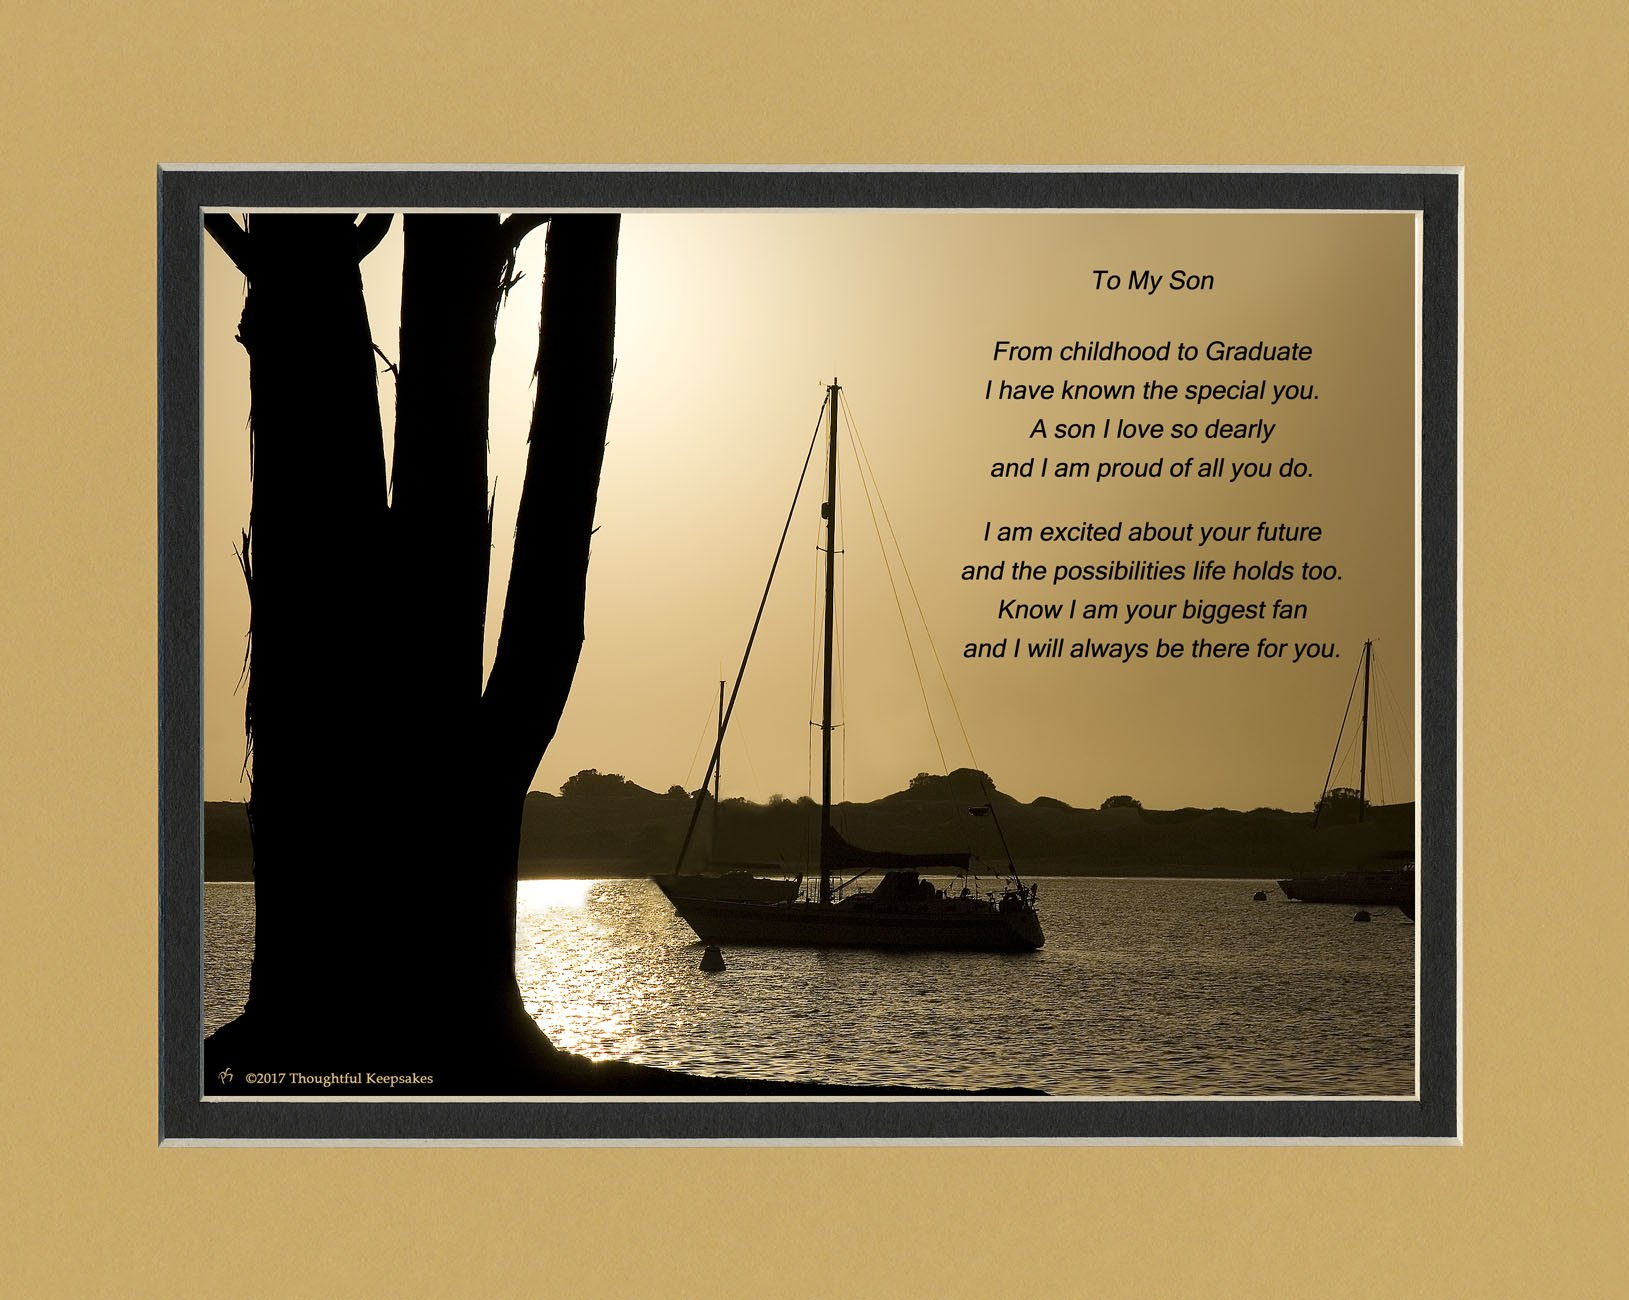 Graduation Gifts Son, Boats at Dusk Photo with From Childhood to Graduate Poem, 8x10 Double Matted. Special Keepsake for Son, Unique College and High School Grad Gifts for your Son.